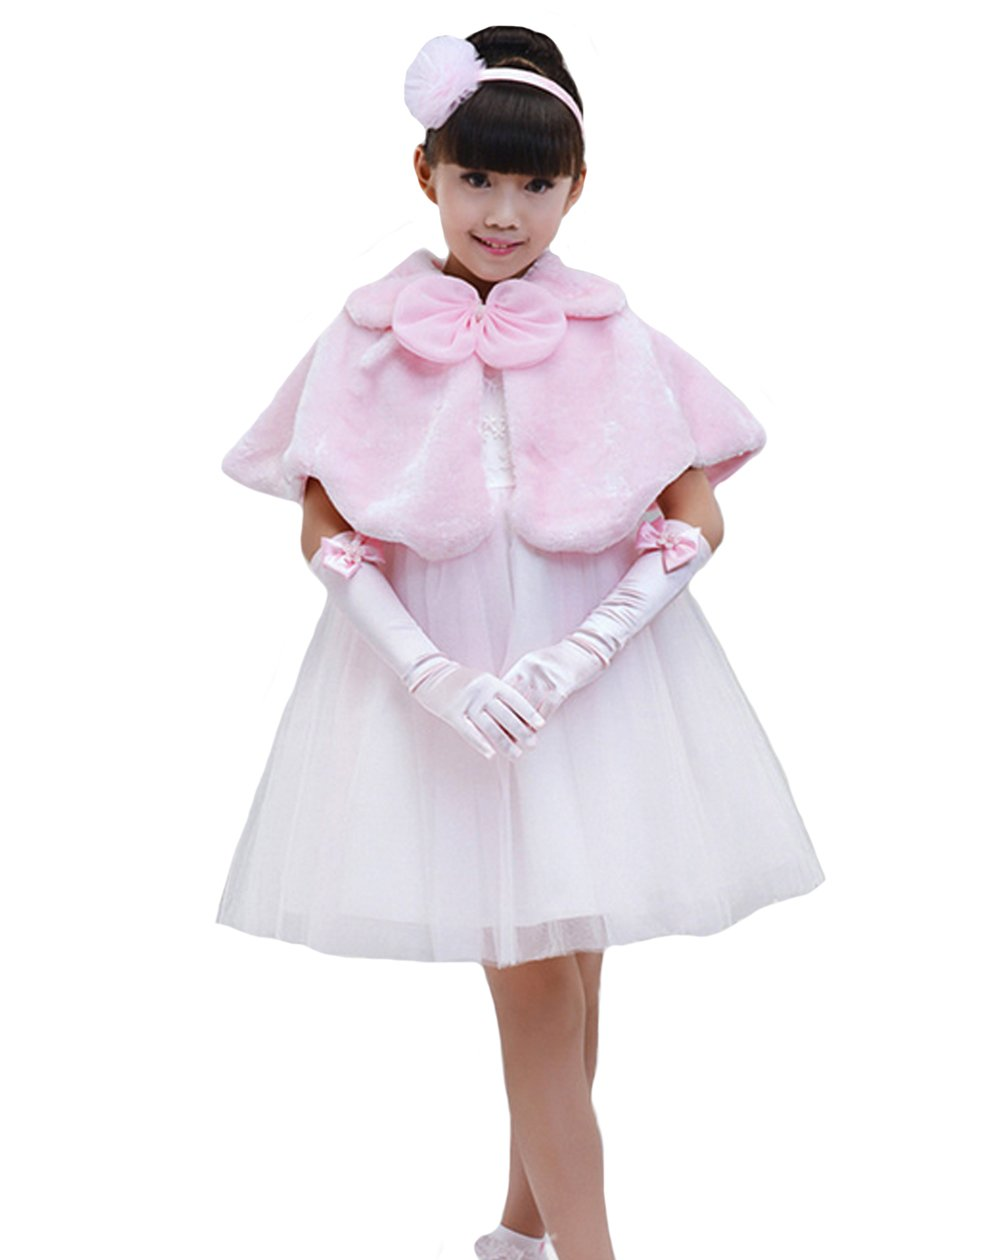 Genda 2Archer Flower Girl Cozy Faux Fur Bolero Shrug Ribbon Ties Princess Cape(Pink,S)